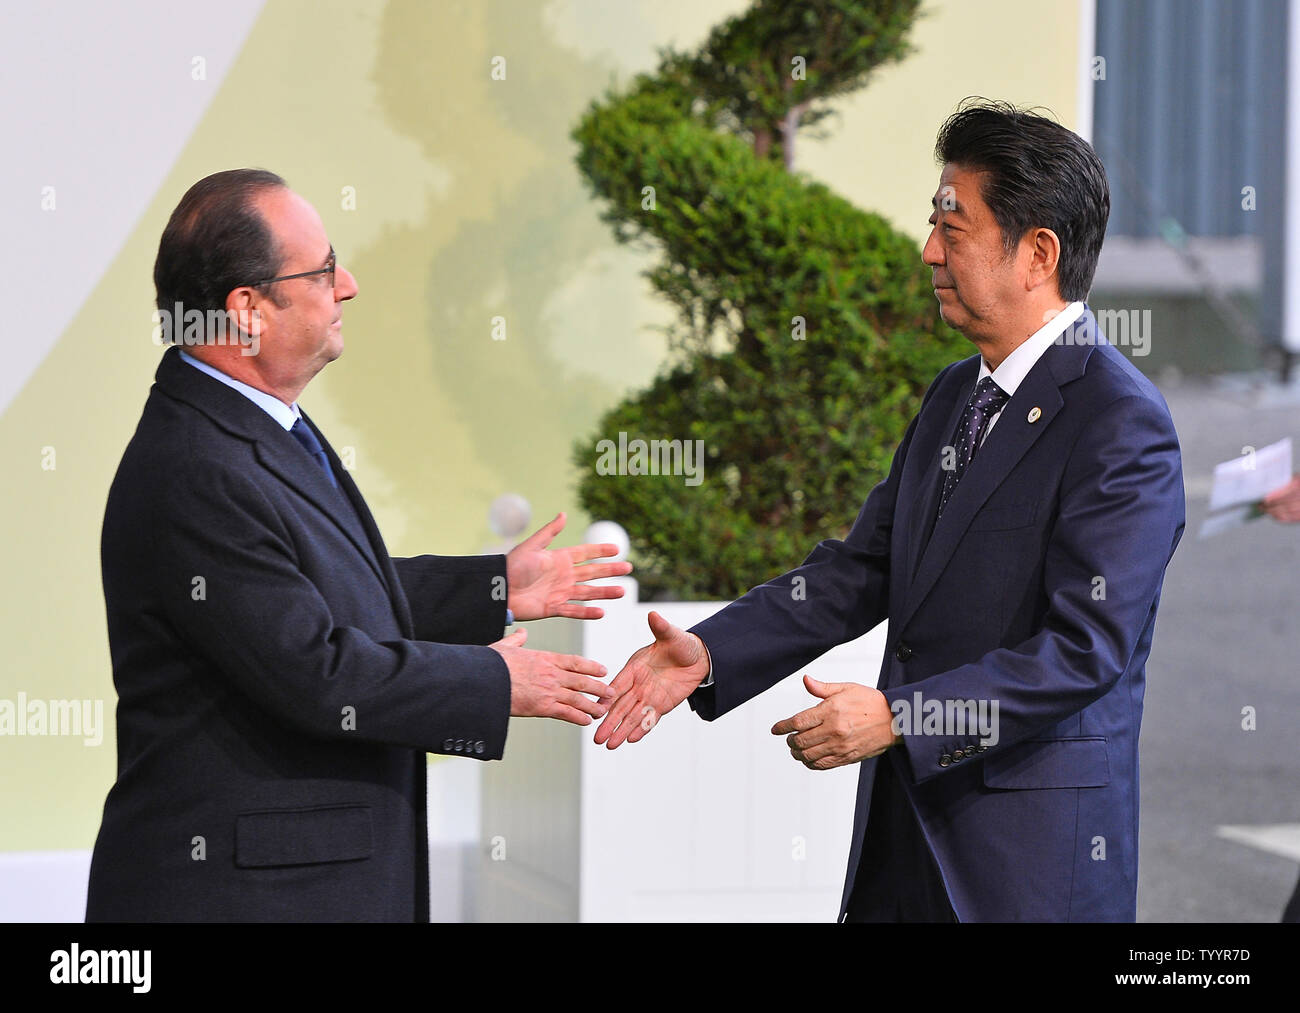 Japanese Prime Minister Shinzo Abe (R) is greeted by French President Francois Hollande at the United Nation's 21st climate change conference at Le Bourget near Paris on November 30, 2015. The almost 150 heads of state and representatives from 200 countries in attendance will attempt to negotiate a legally binding agreement to limit worldwide carbon emissions with the goal of keeping global warming under 2 degrees Celsius.   Photo by David Silpa/UPI - Stock Image